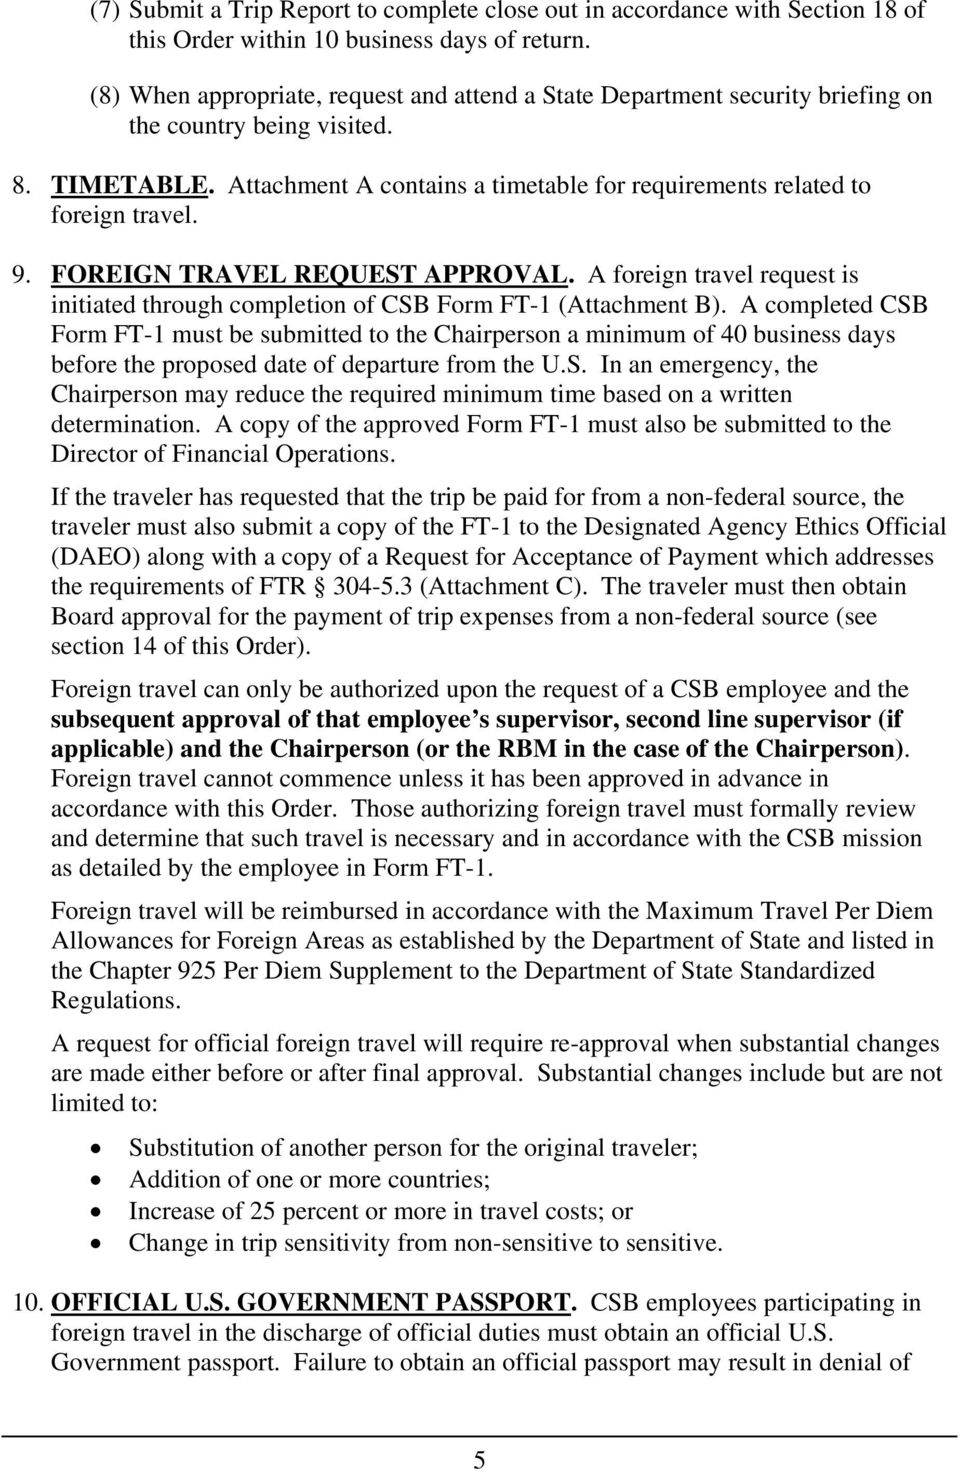 9. FOREIGN TRAVEL REQUEST APPROVAL. A foreign travel request is initiated through completion of CSB Form FT-1 (Attachment B).